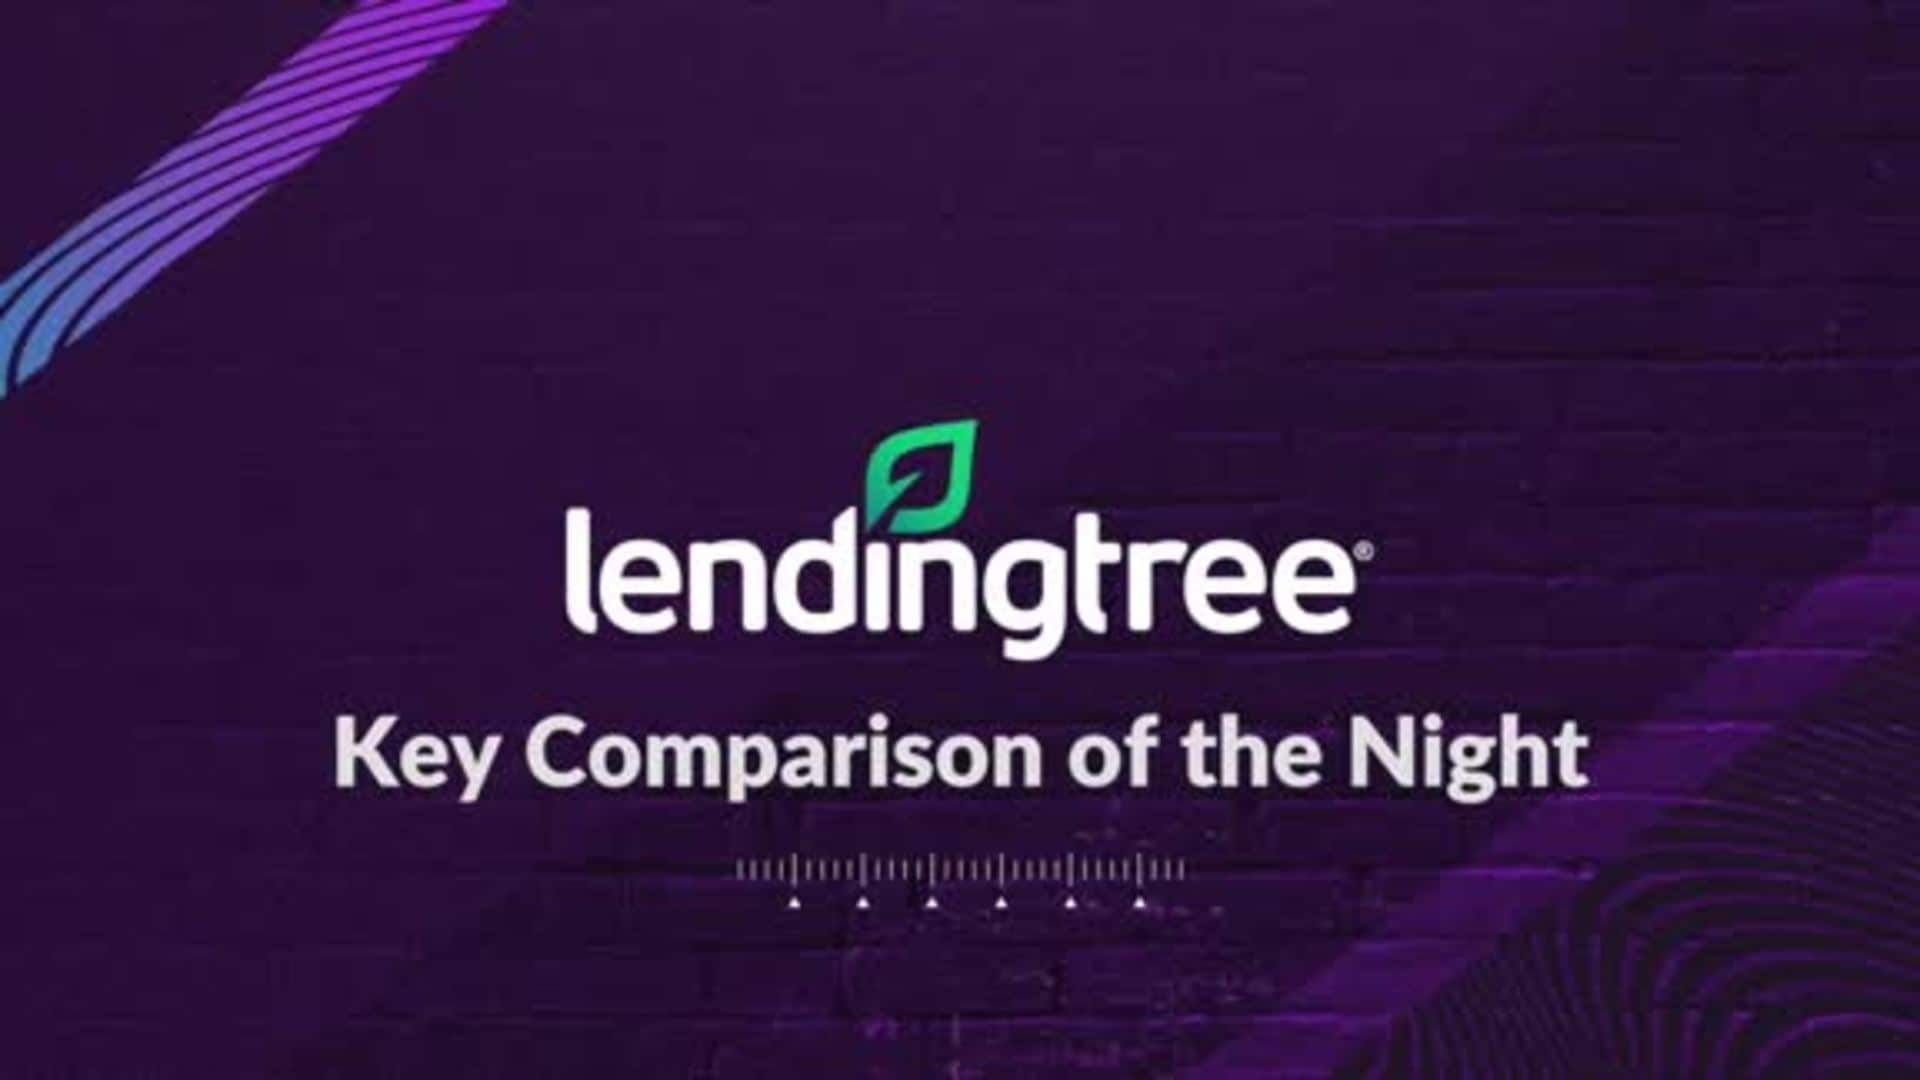 LendingTree's Key Comparison of the Night - 1/24/20